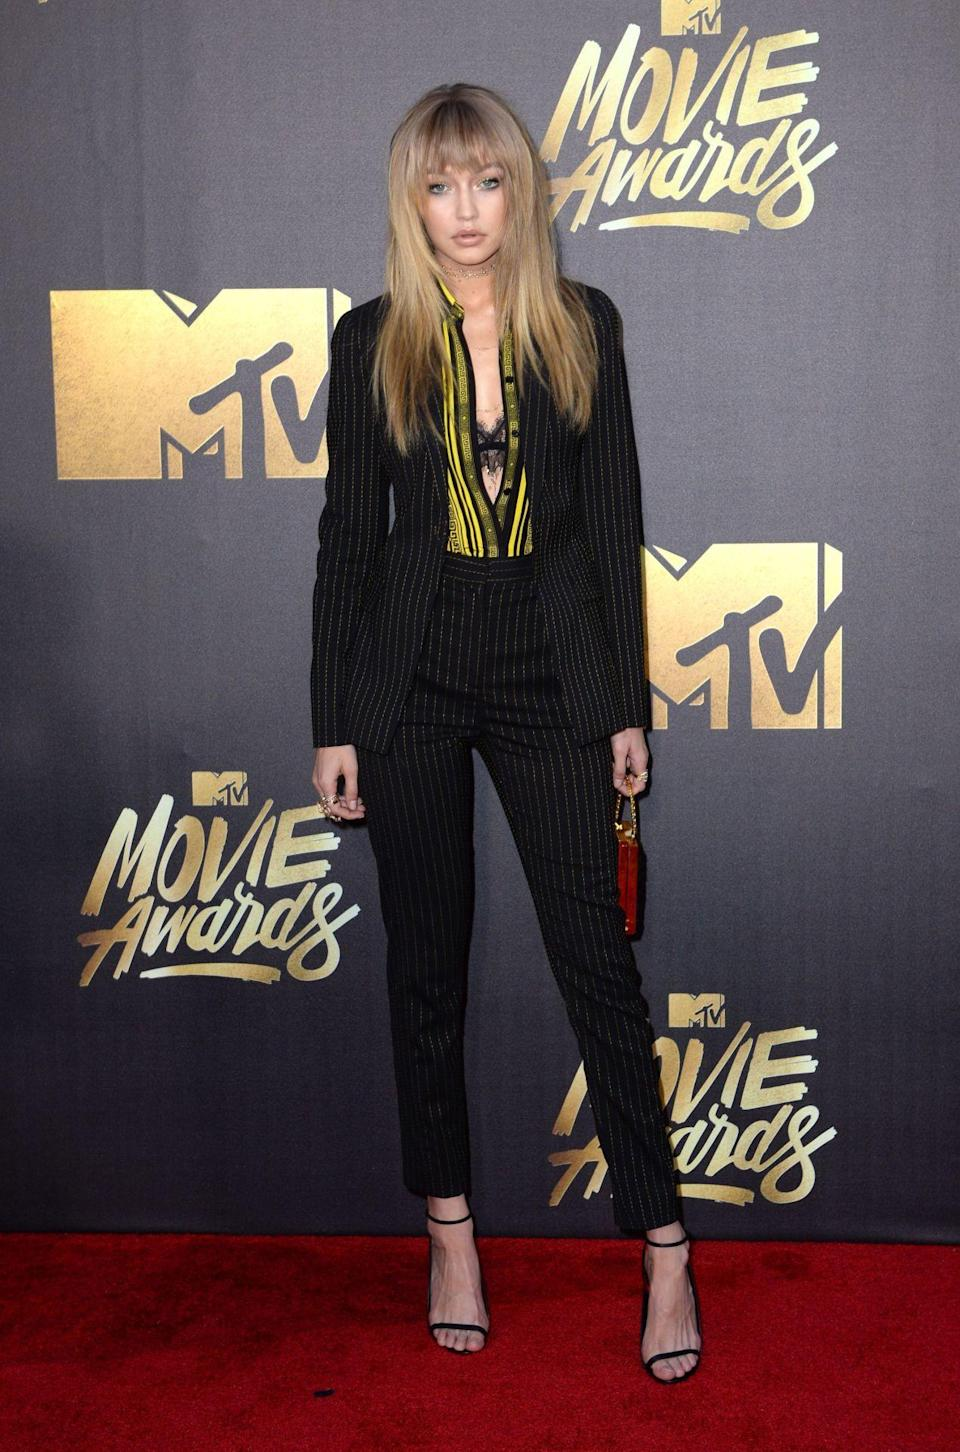 <p>Gigi's modelled for Versace, Tommy Hilfiger and Maybelline in the past year helping her become one of the world's top models. <i>[Photo: PA]</i></p>